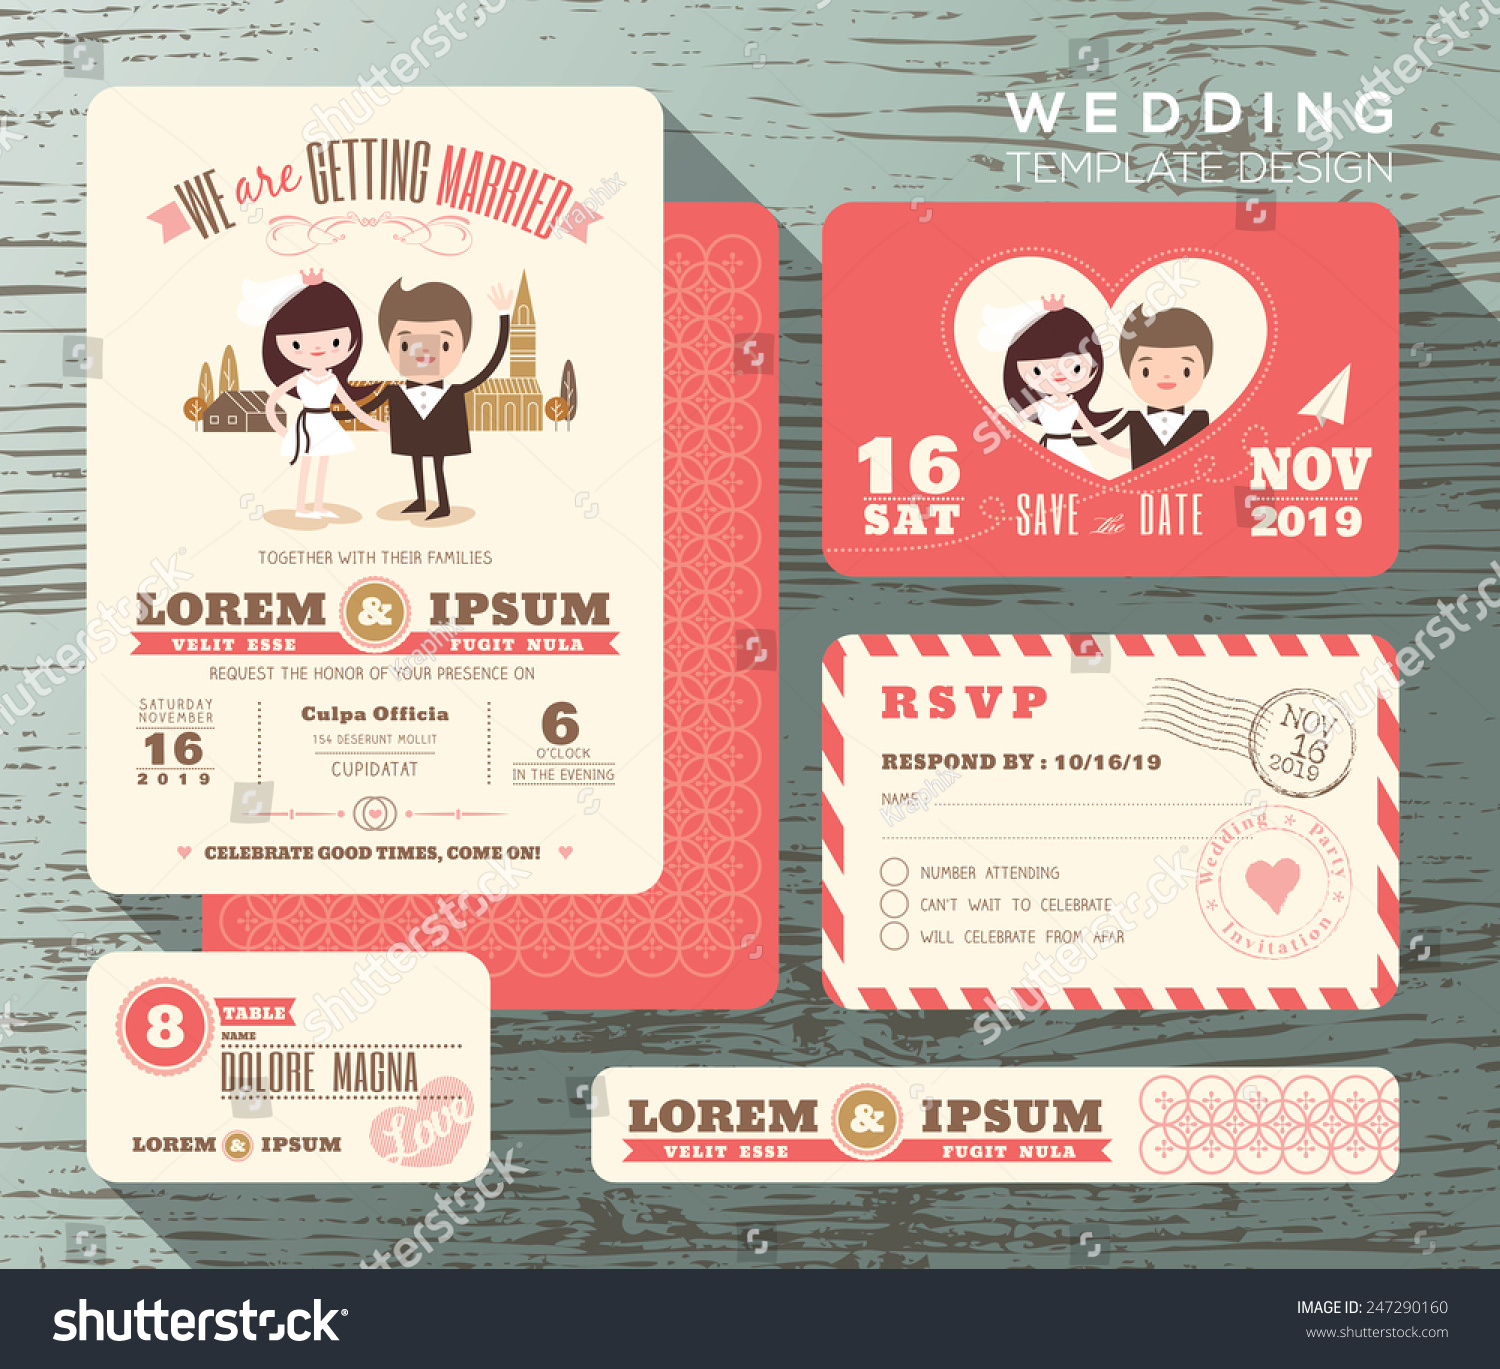 Cute Groom Bride Couple Wedding Invitation Stock Vector (Royalty ...